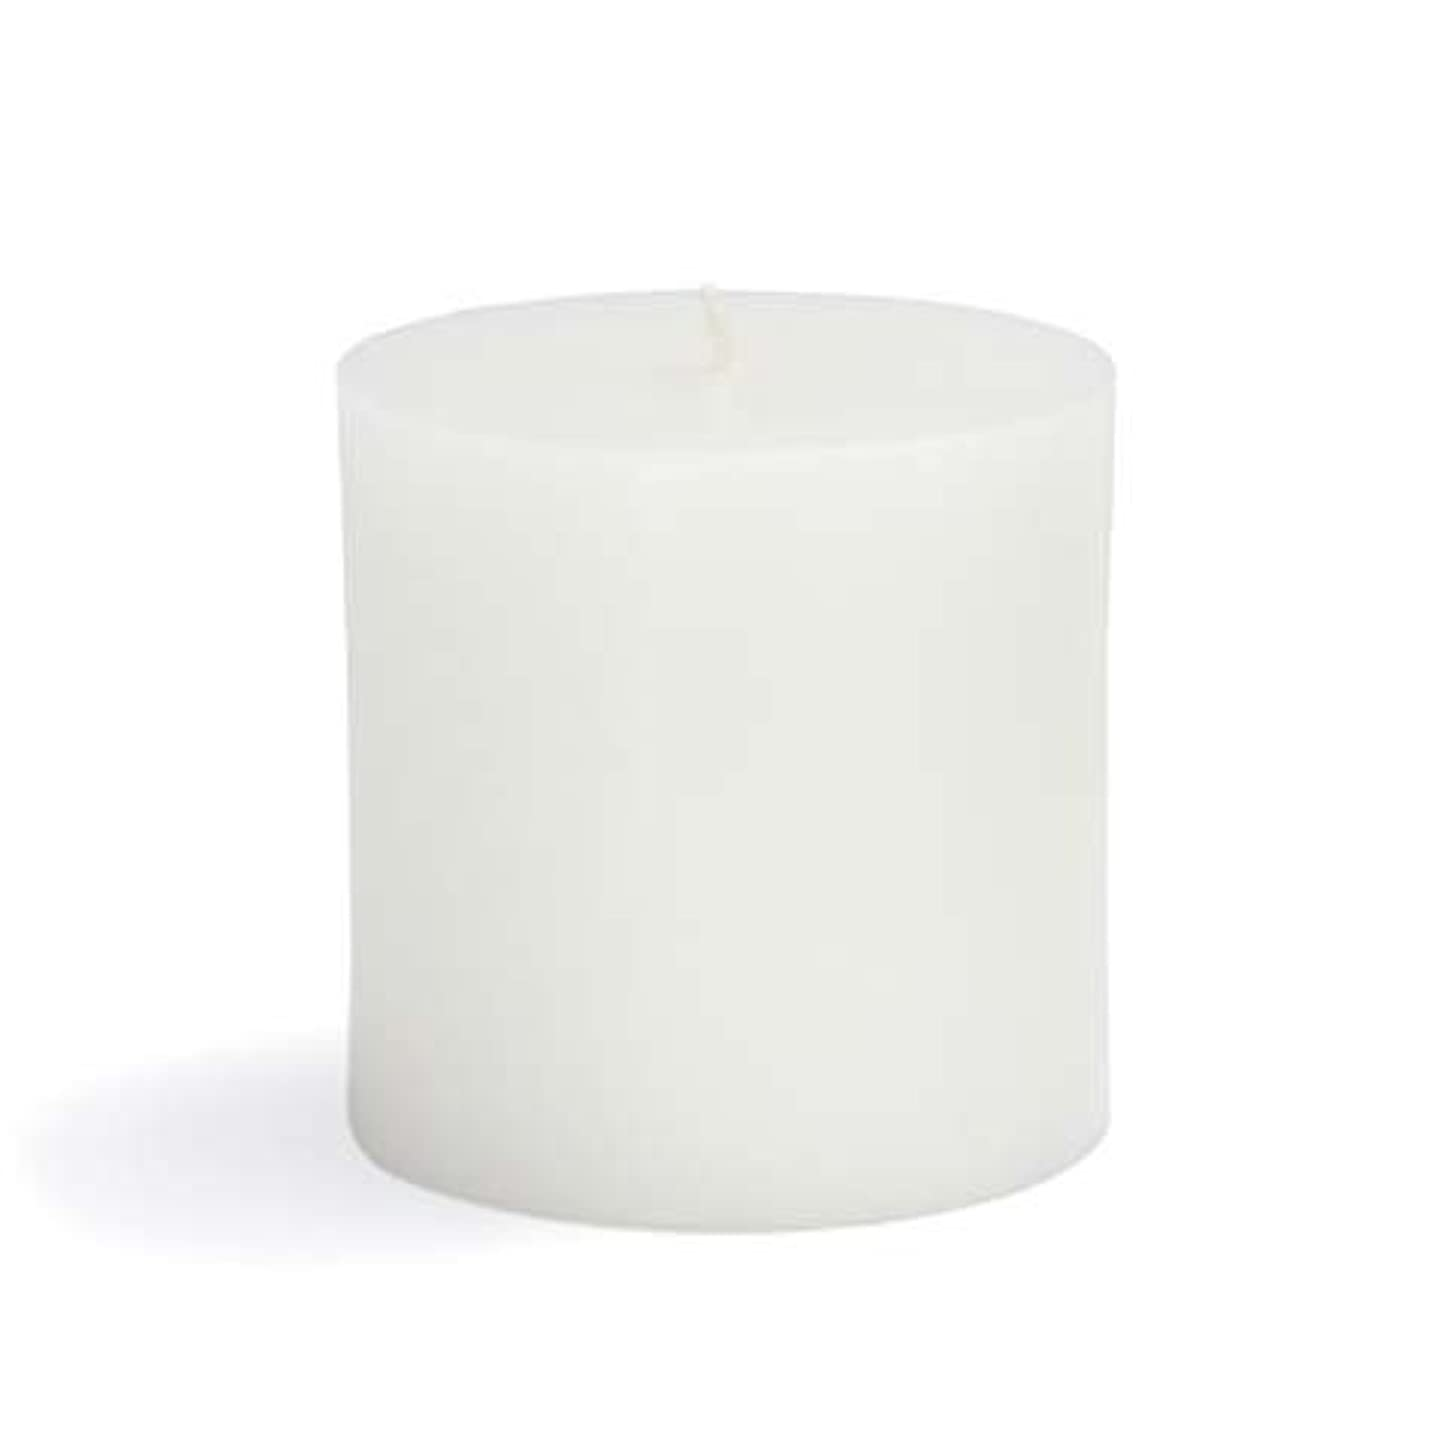 ダイアクリティカル運営哀Zest Candle CPZ-071-12 3 x 3 in. White Pillar Candles -12pcs-Case- Bulk